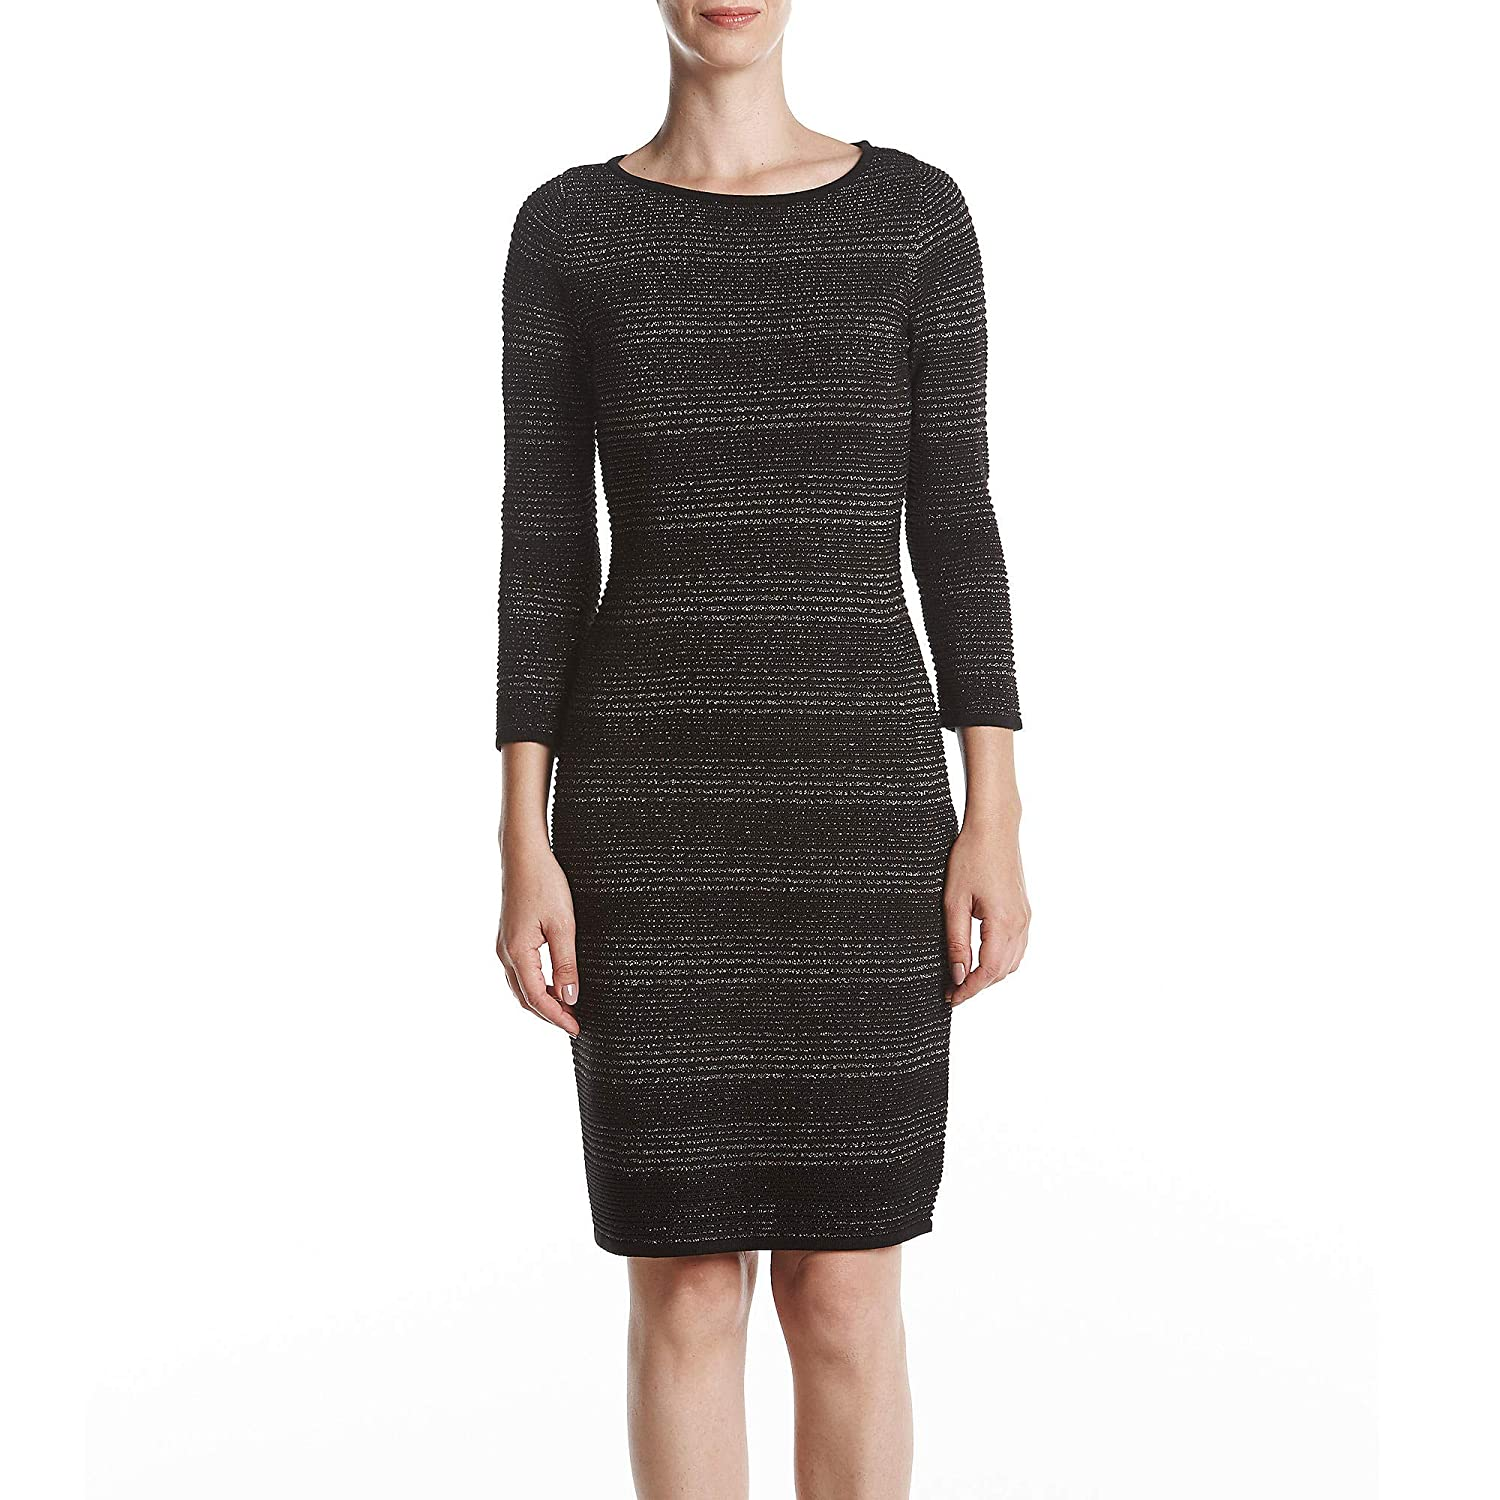 5cb1da4a Calvin Klein Womens Knit 3/4 Sleeves Sweaterdress at Amazon Women's  Clothing store: